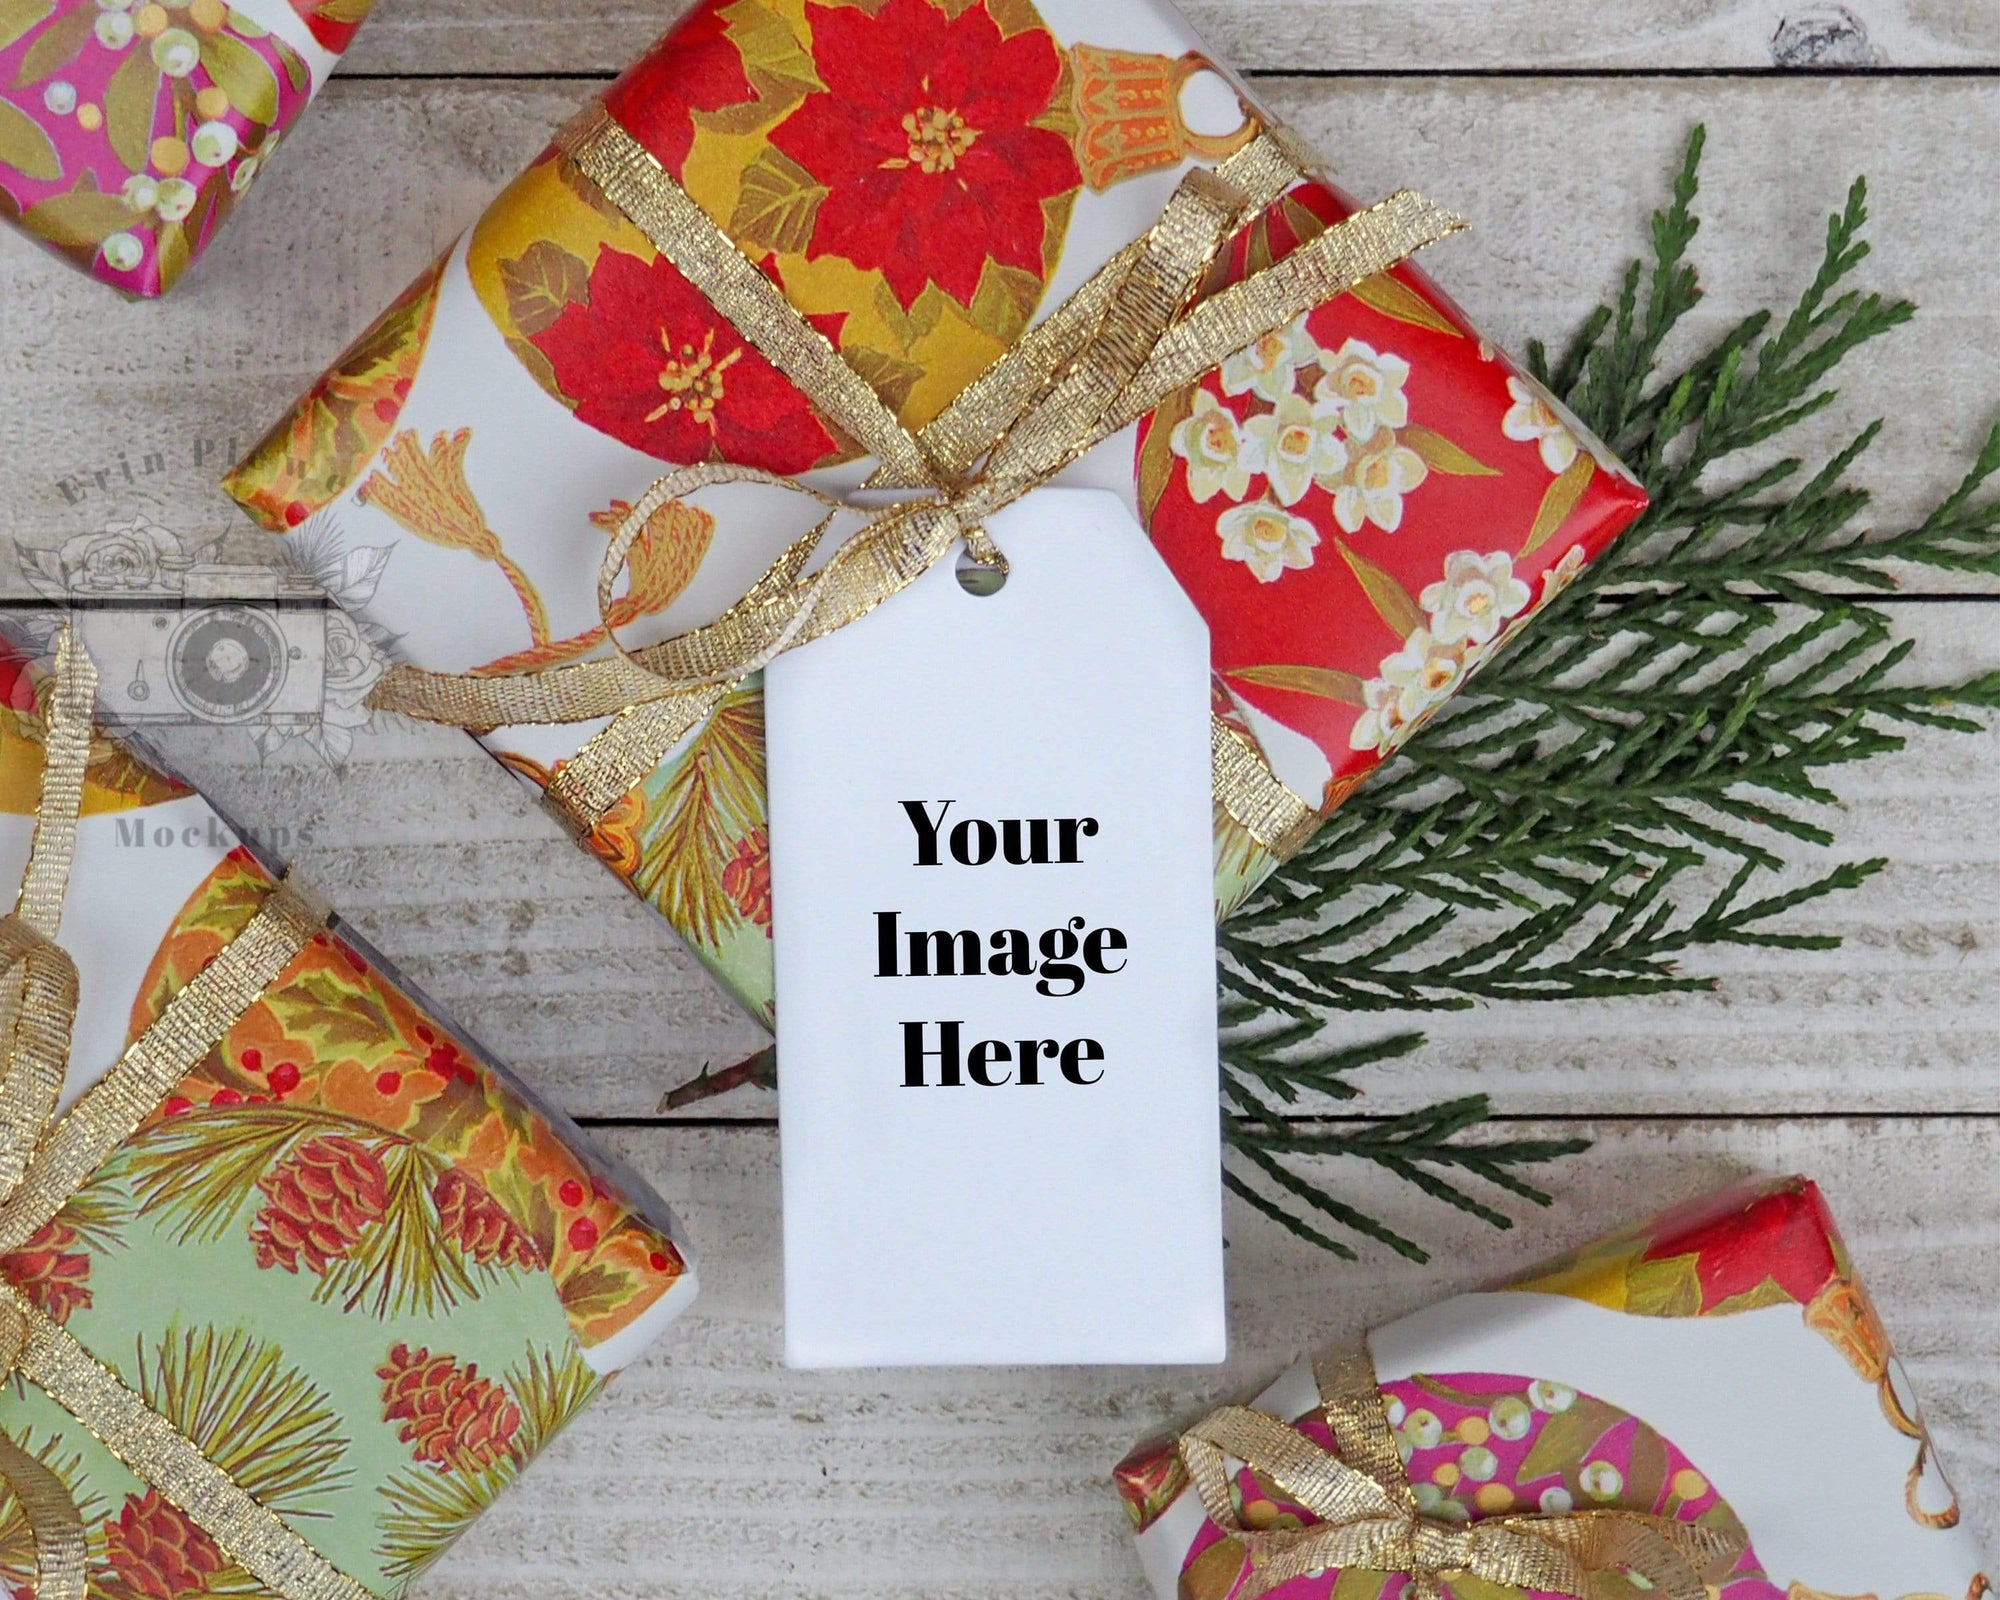 Erin Plewes Mockups Mockup Christmas gift tag mockup, Holiday present mock-up with thank you card label for lifestyle photo, JPG and PNG instant Digital Download